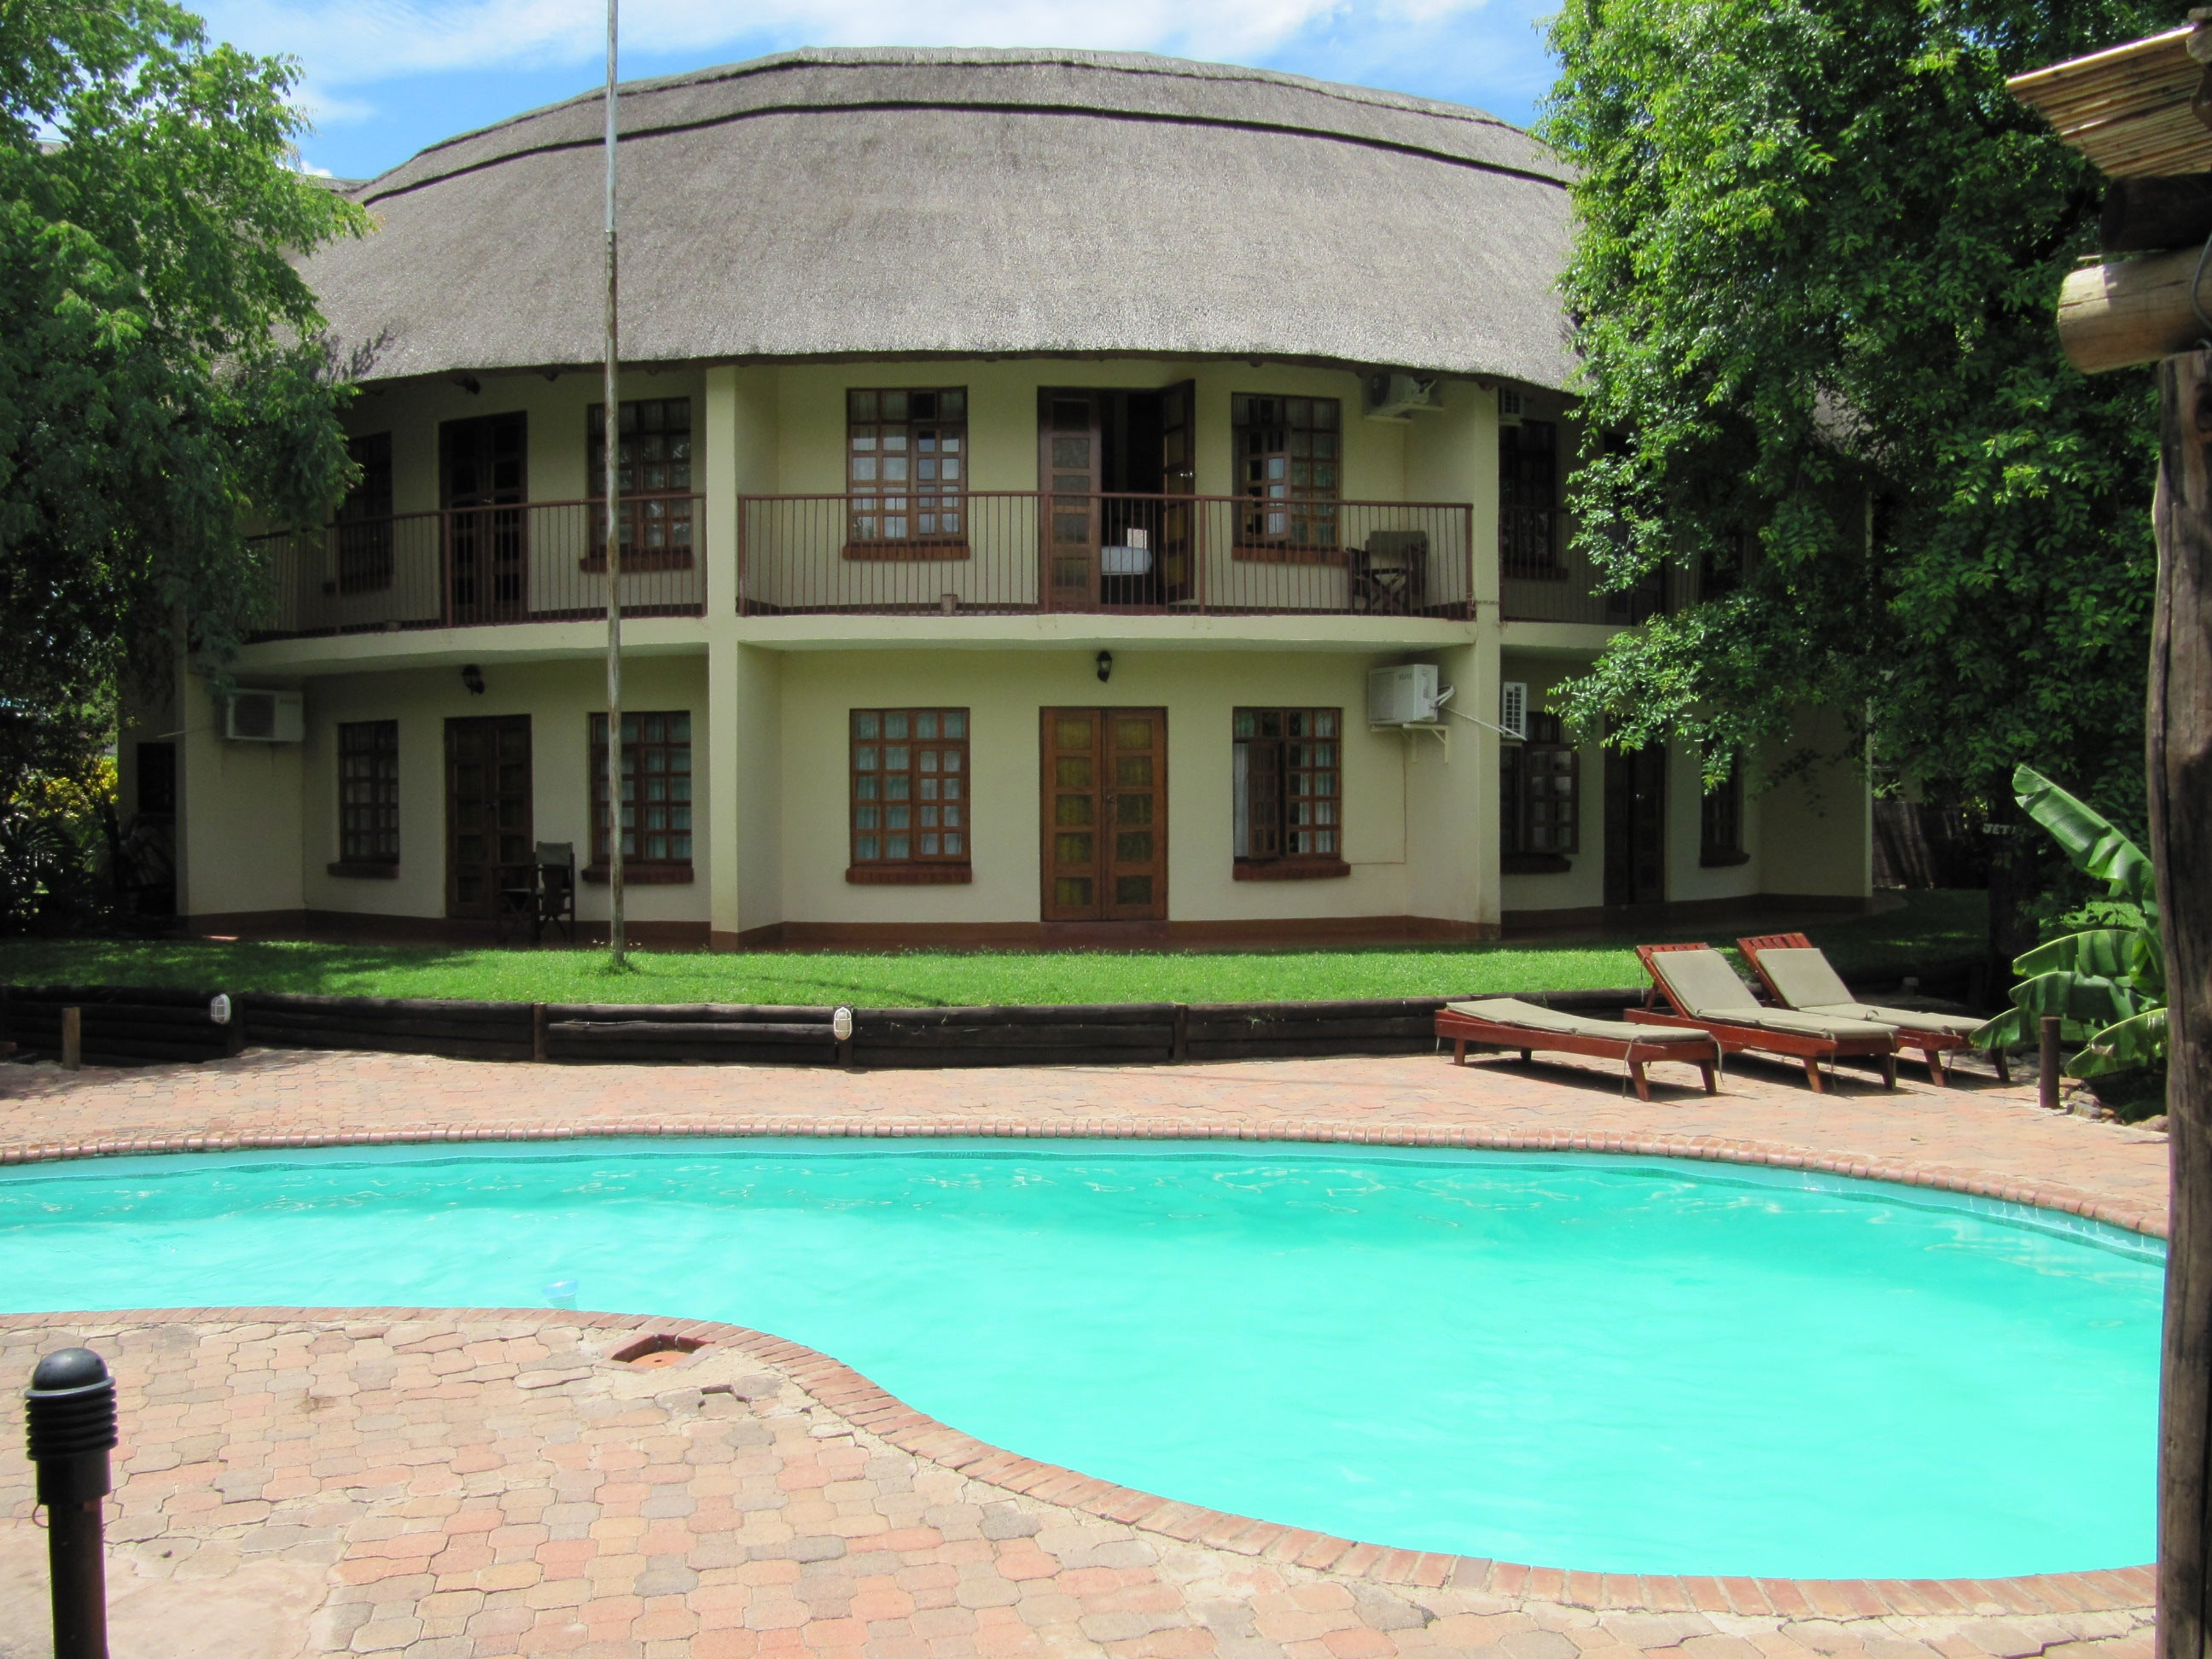 Hotel Waterlily lodge